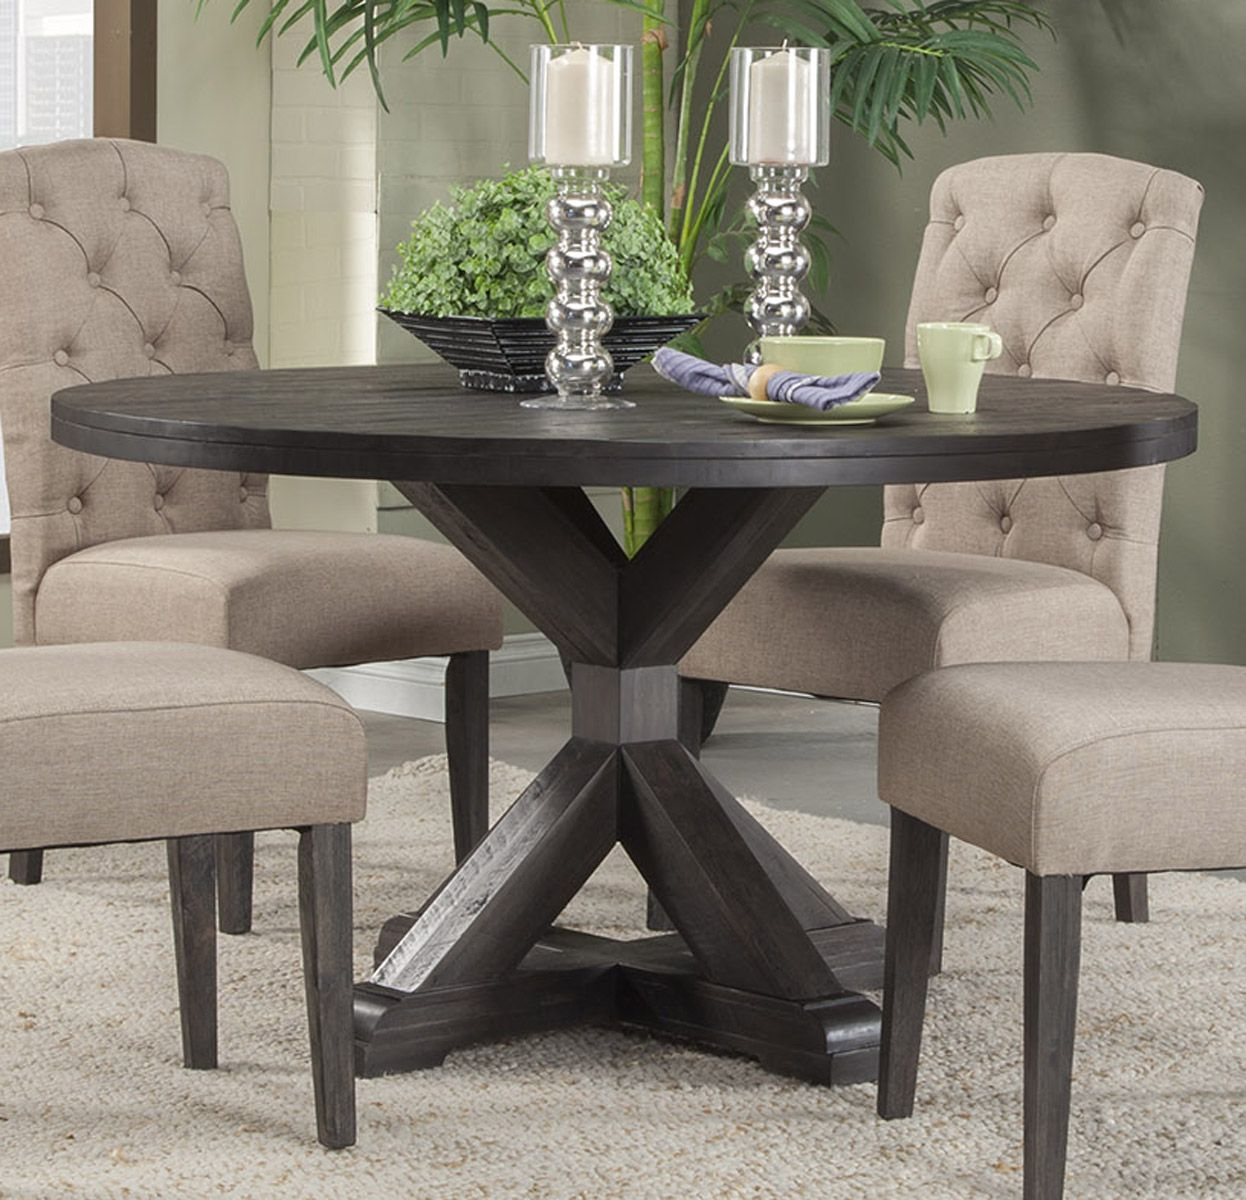 Alpine Furniture Newberry Round Dining Table In Salvaged Grey 1468 25 By Dining Rooms Outlet Round Dining Room Table Round Dining Room Sets Round Dining Room